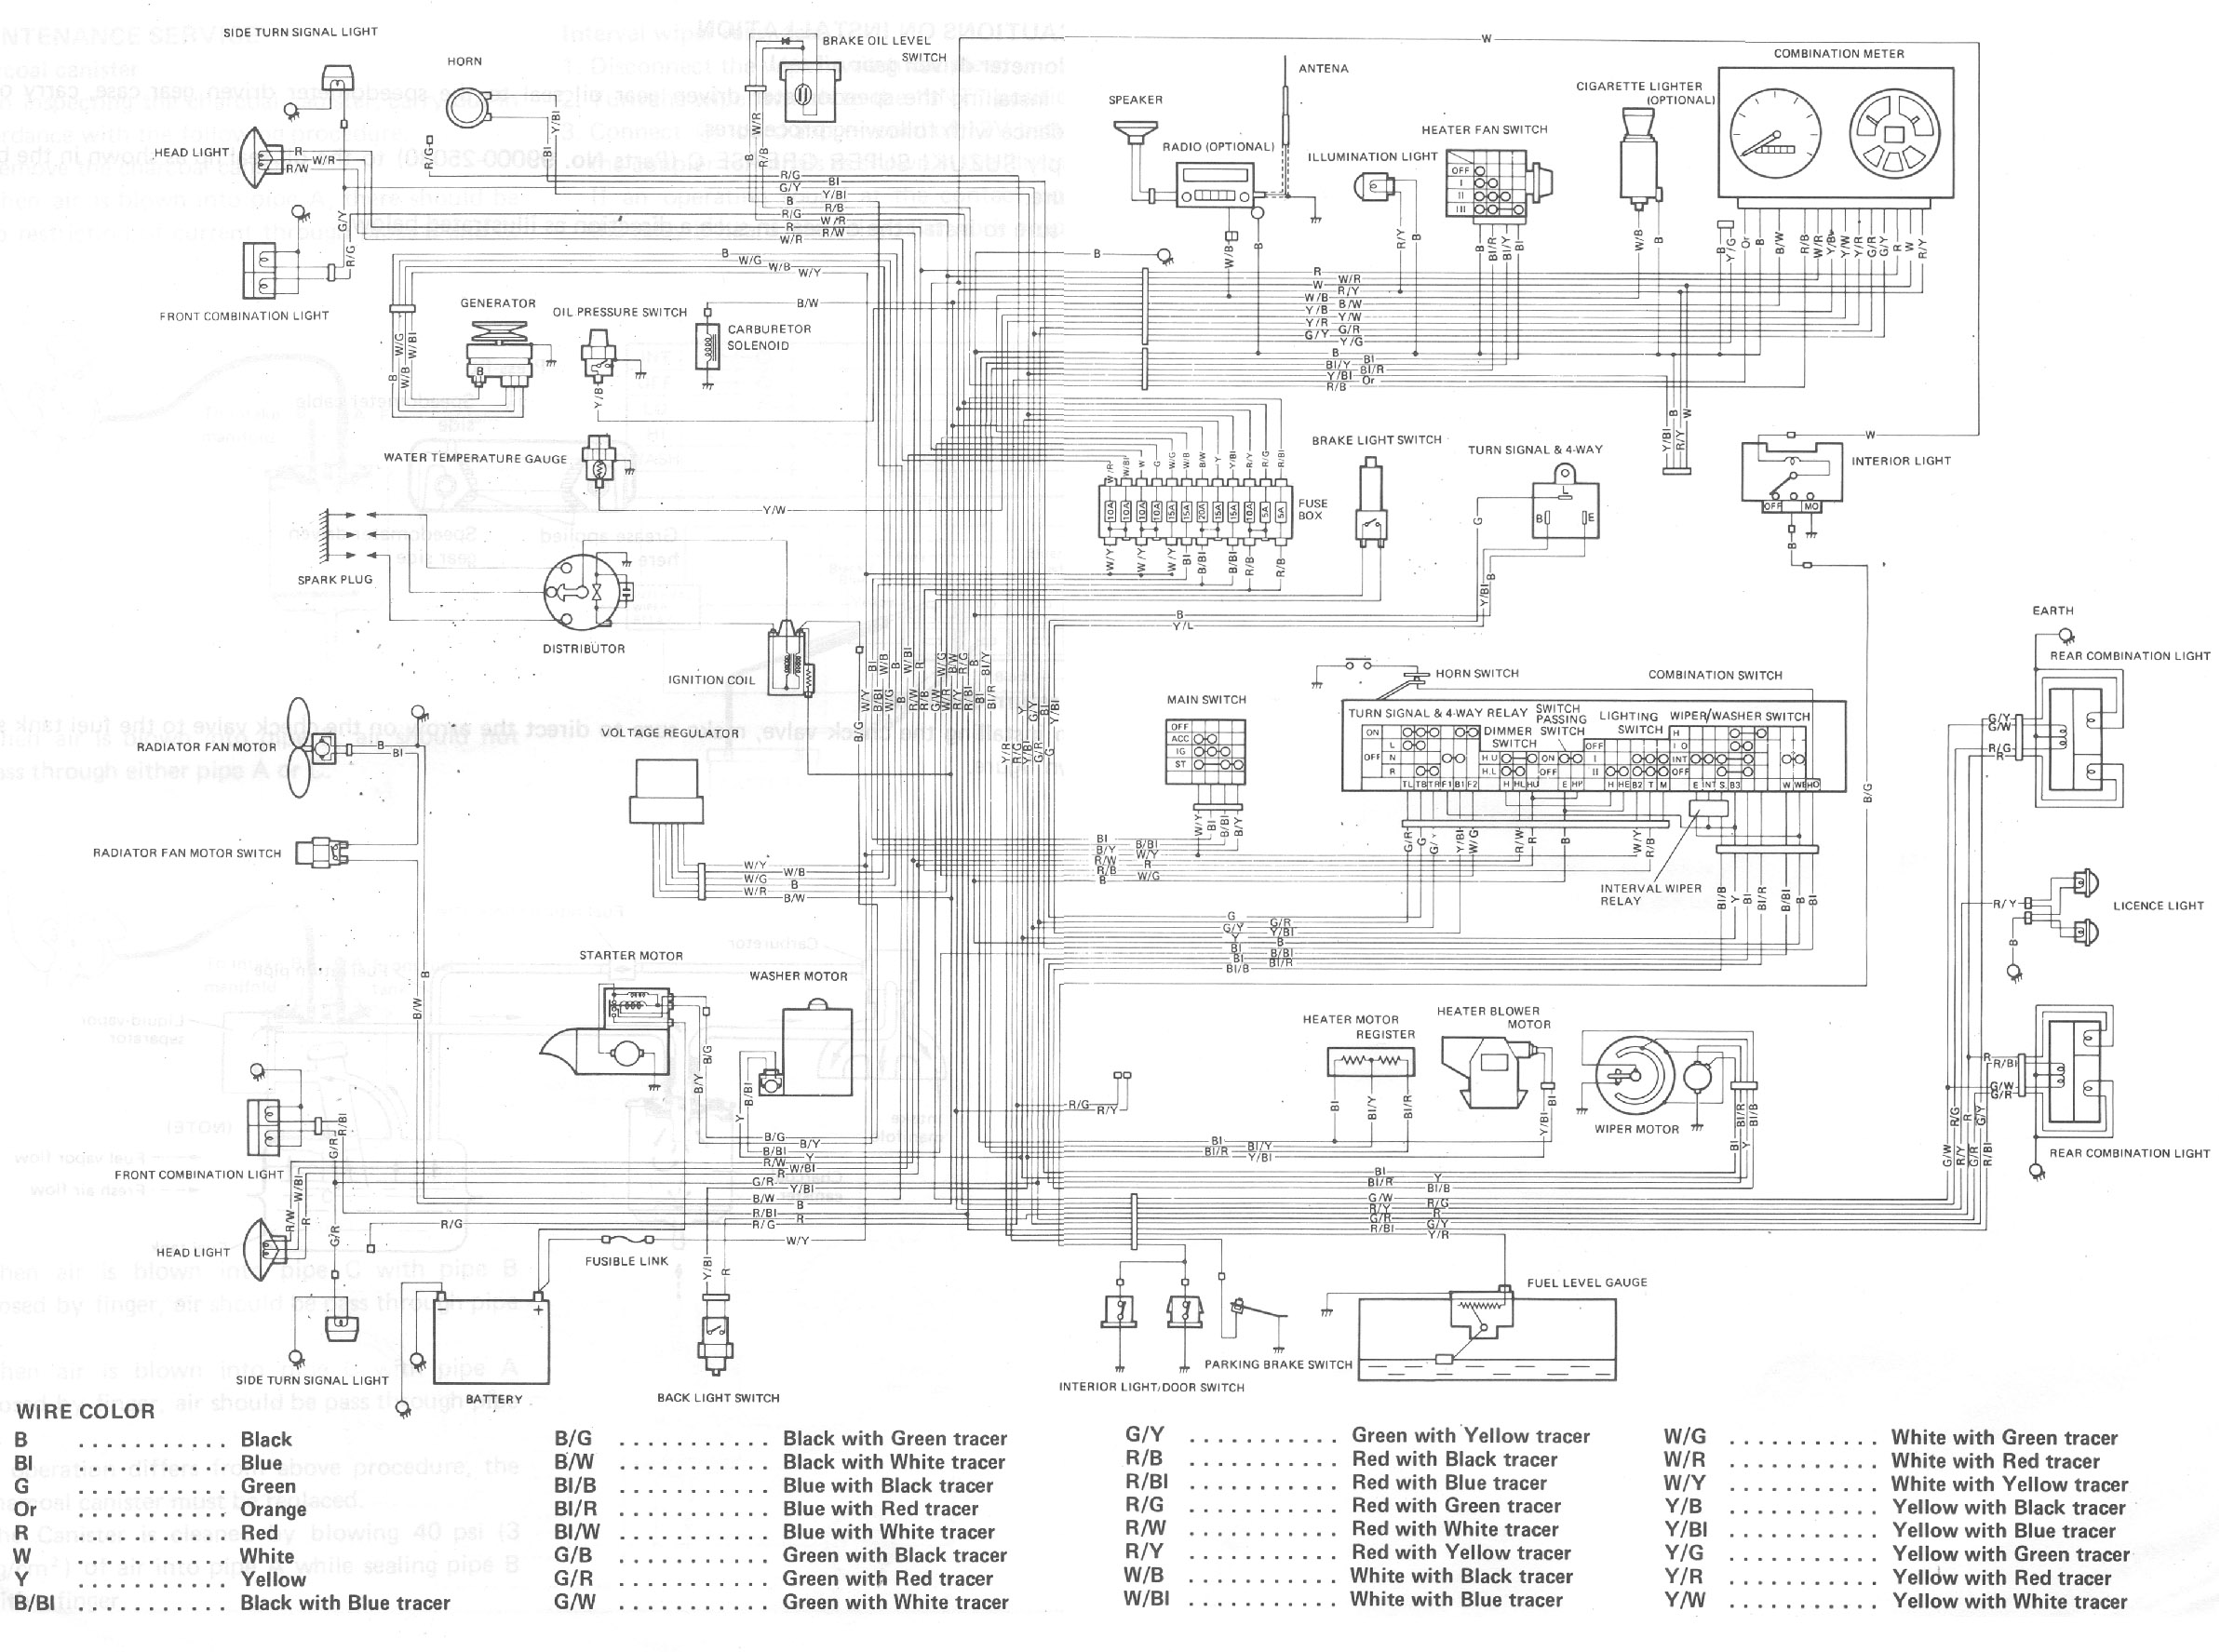 Electric_diagram bad boy buggy wiring diagram 36 volt ezgo wiring diagram 1997 roketa 250cc atv wiring diagram at nearapp.co